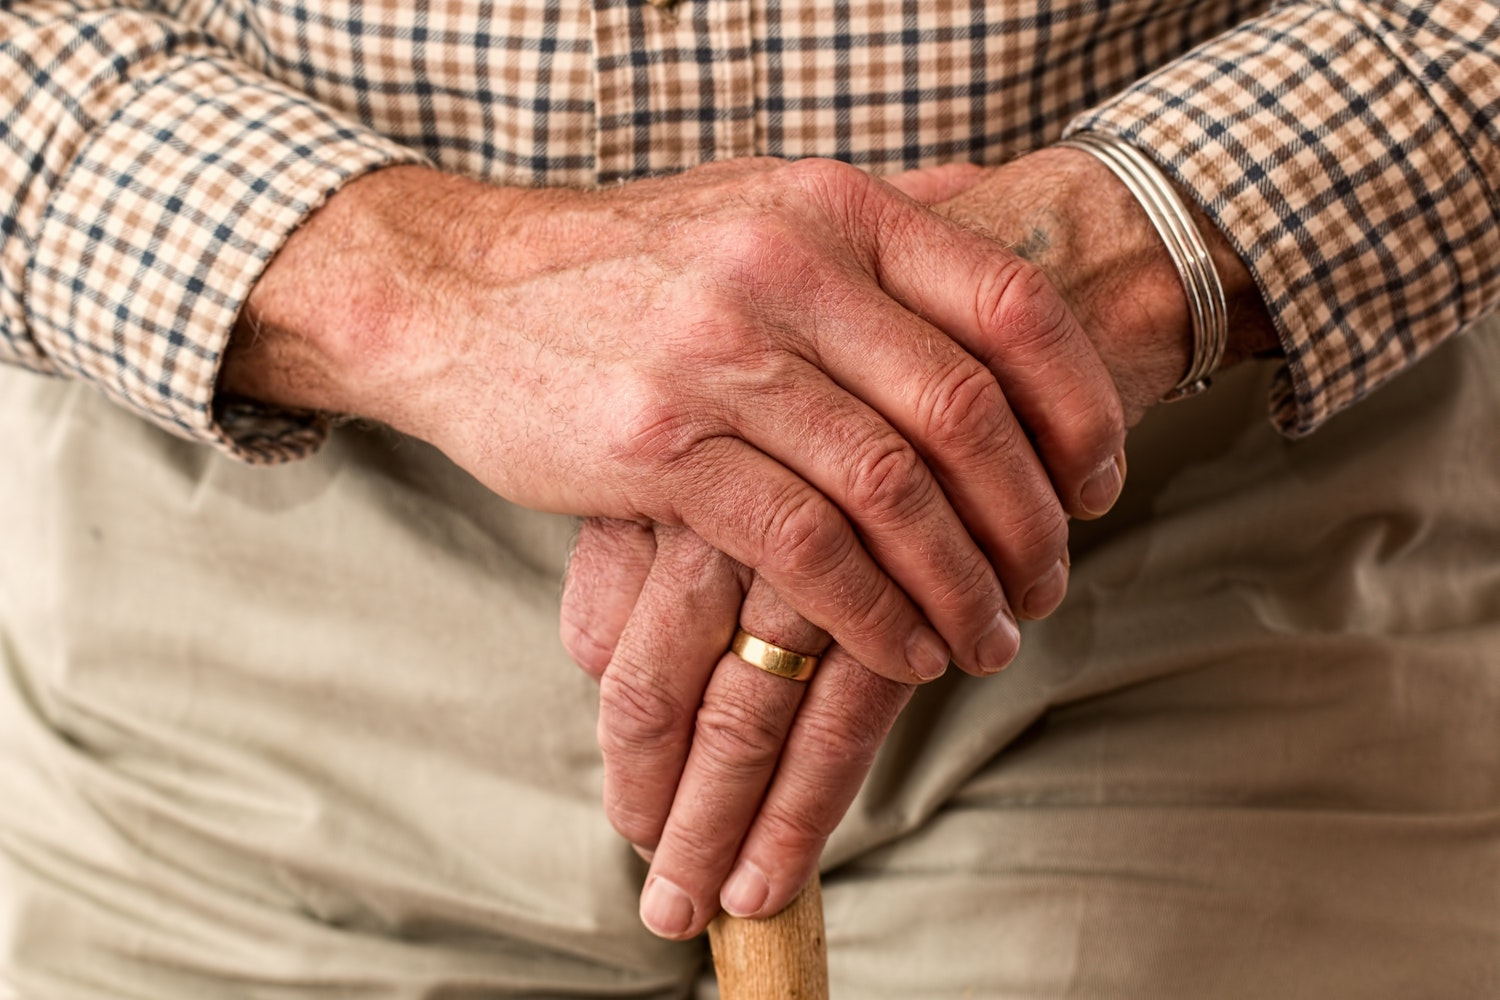 Experts debate cannabis potential in elderly health